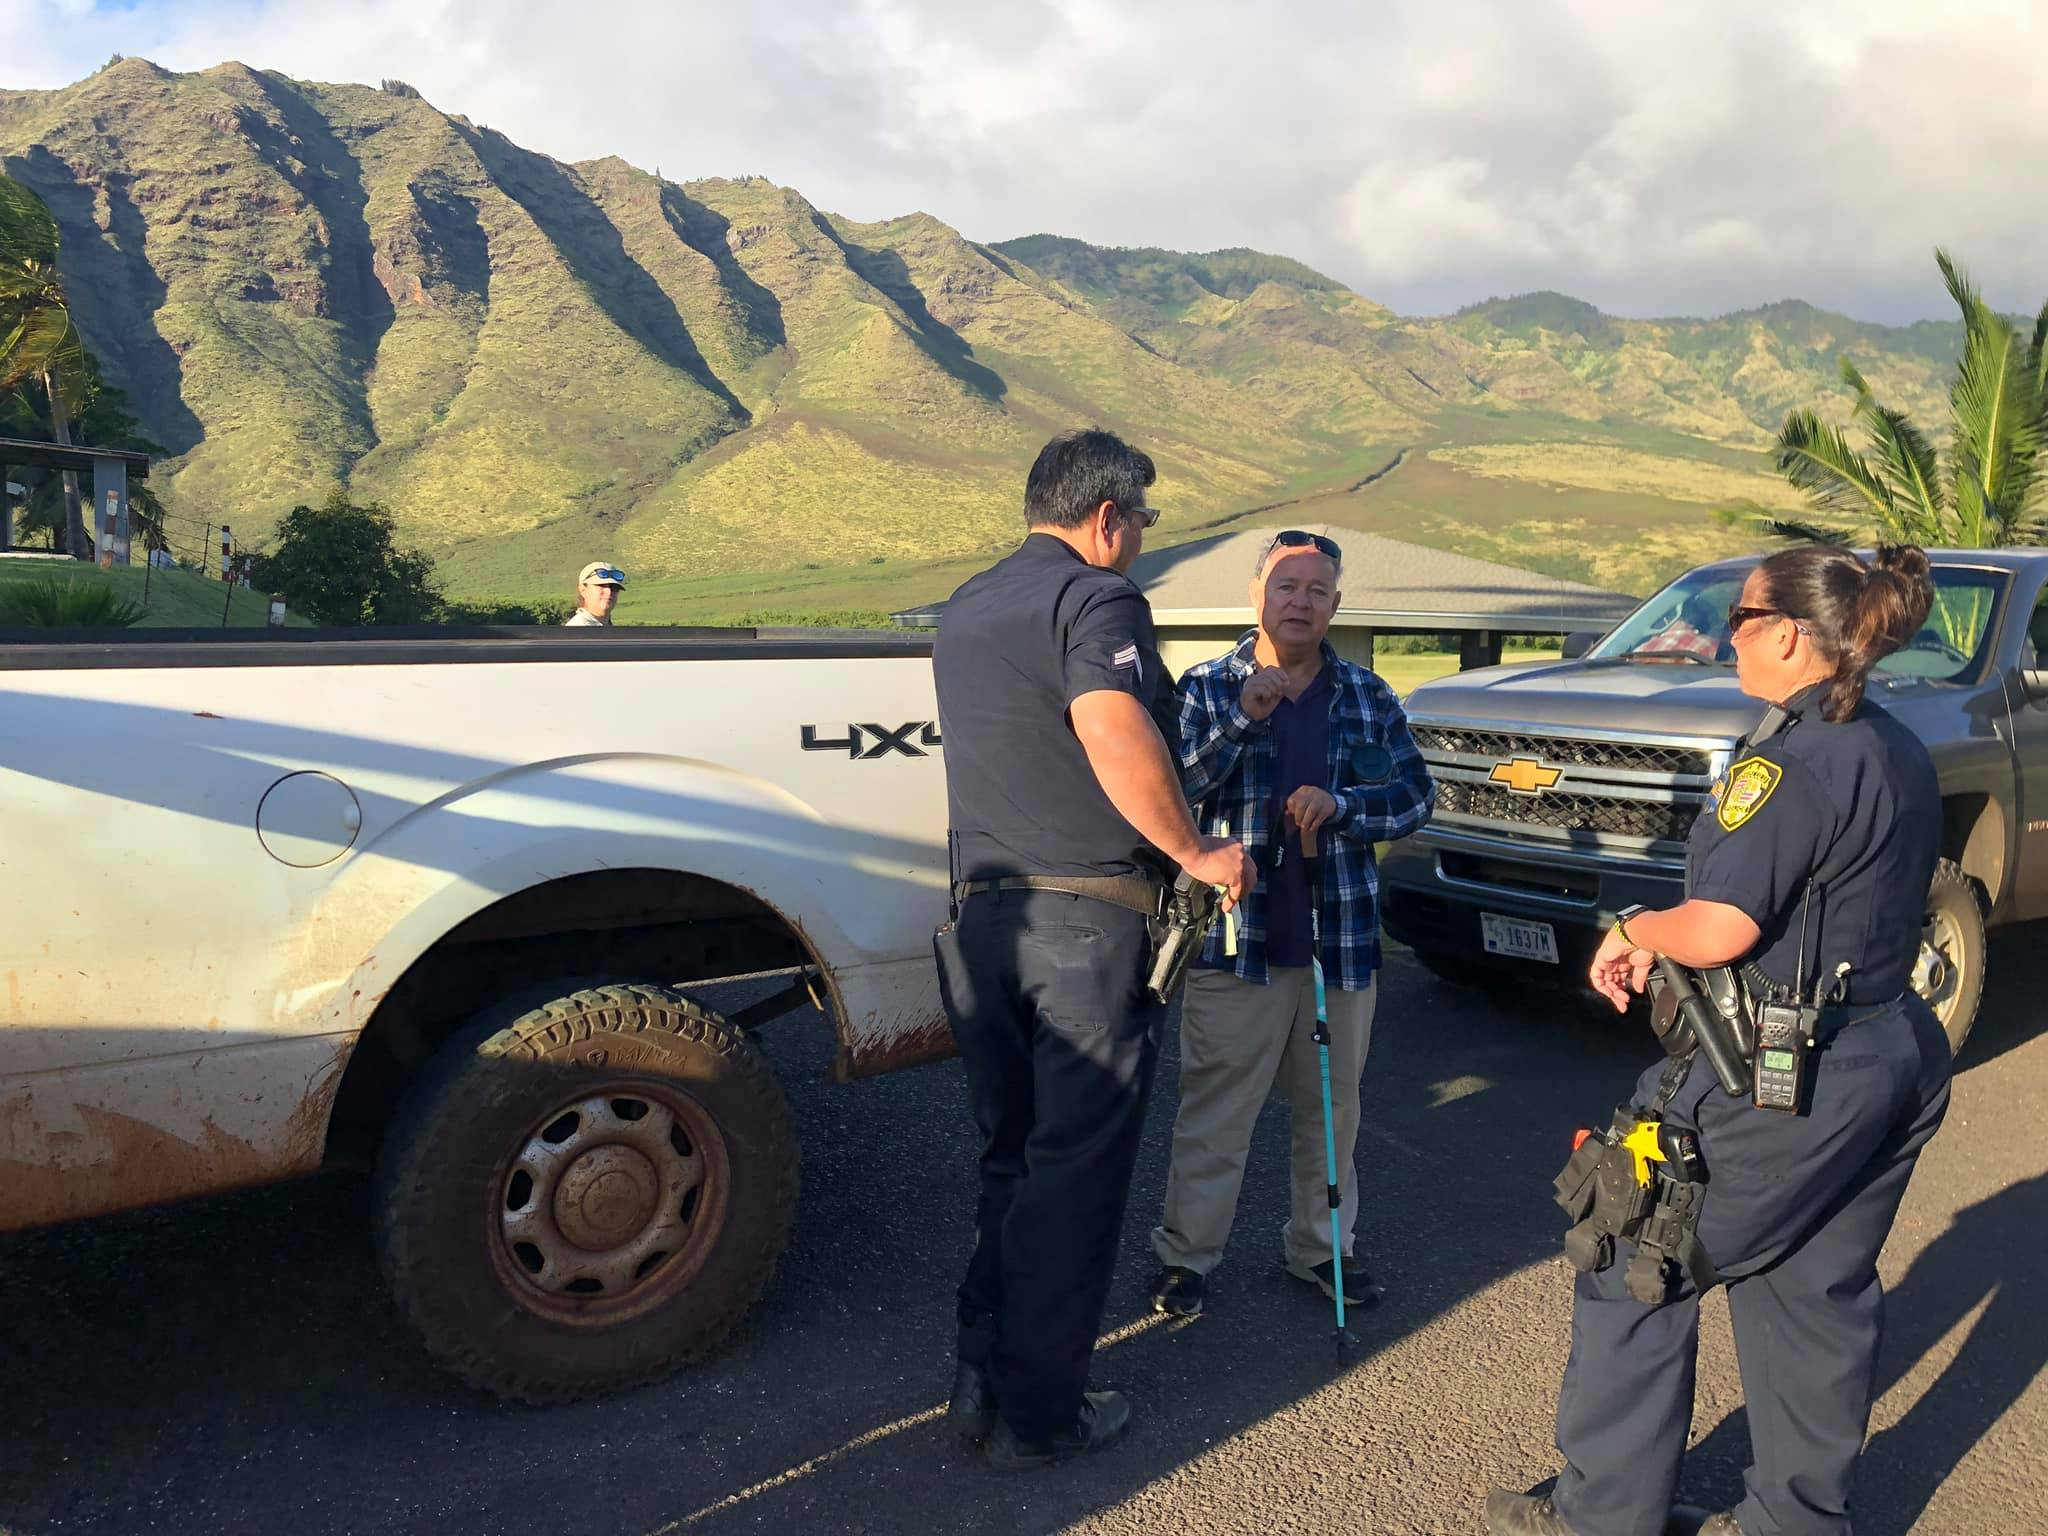 Mālama Mākua founding member Sparky Rodrigues explained the situation to the HPD officers after a two-hour sit-in. In the end, no arrests were made for leaving hoʻokupu. Even the cops could see through the foolishness.